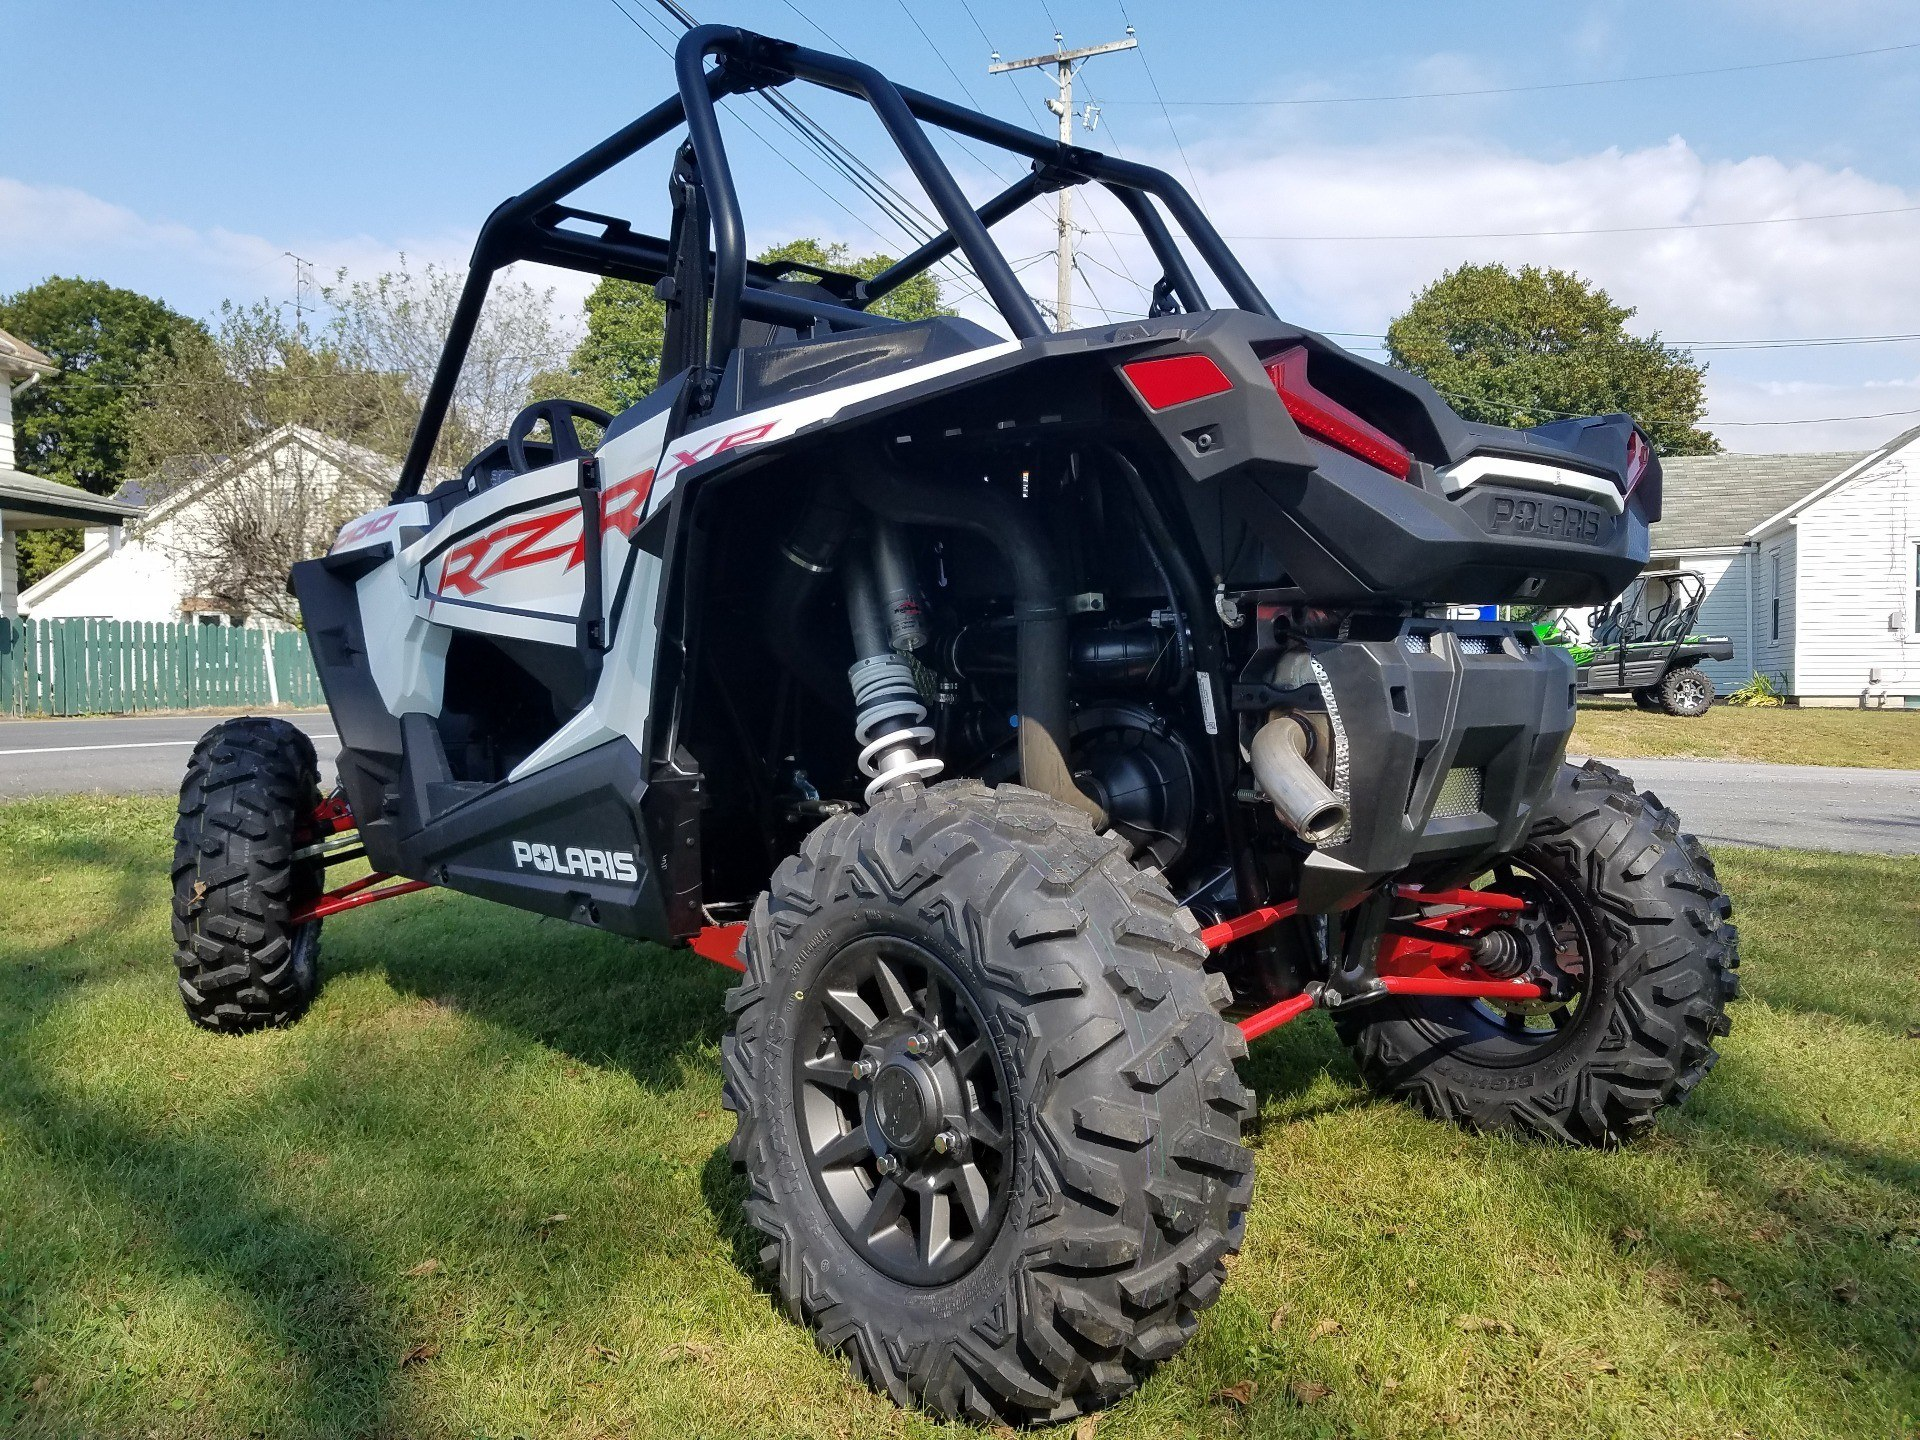 2020 Polaris RZR XP 1000 in Annville, Pennsylvania - Photo 3